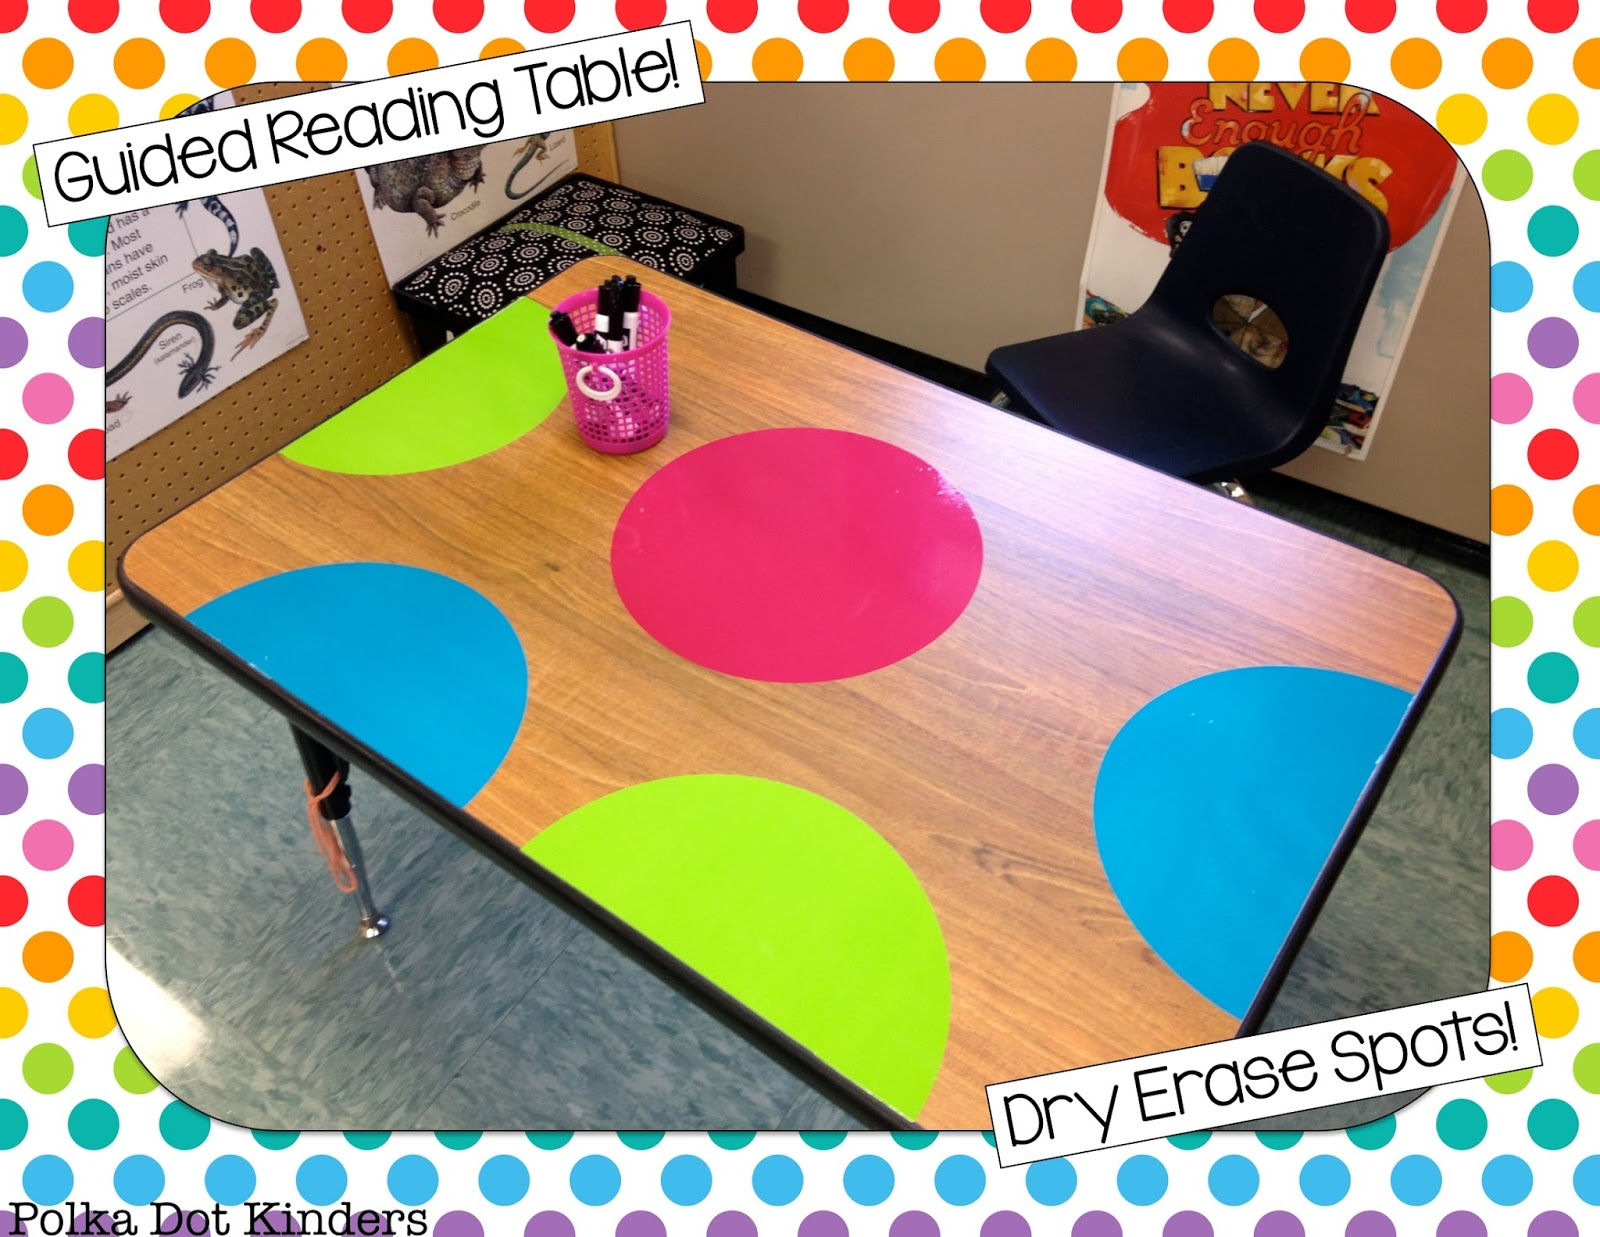 Guided Reading Dry-Erase Dots